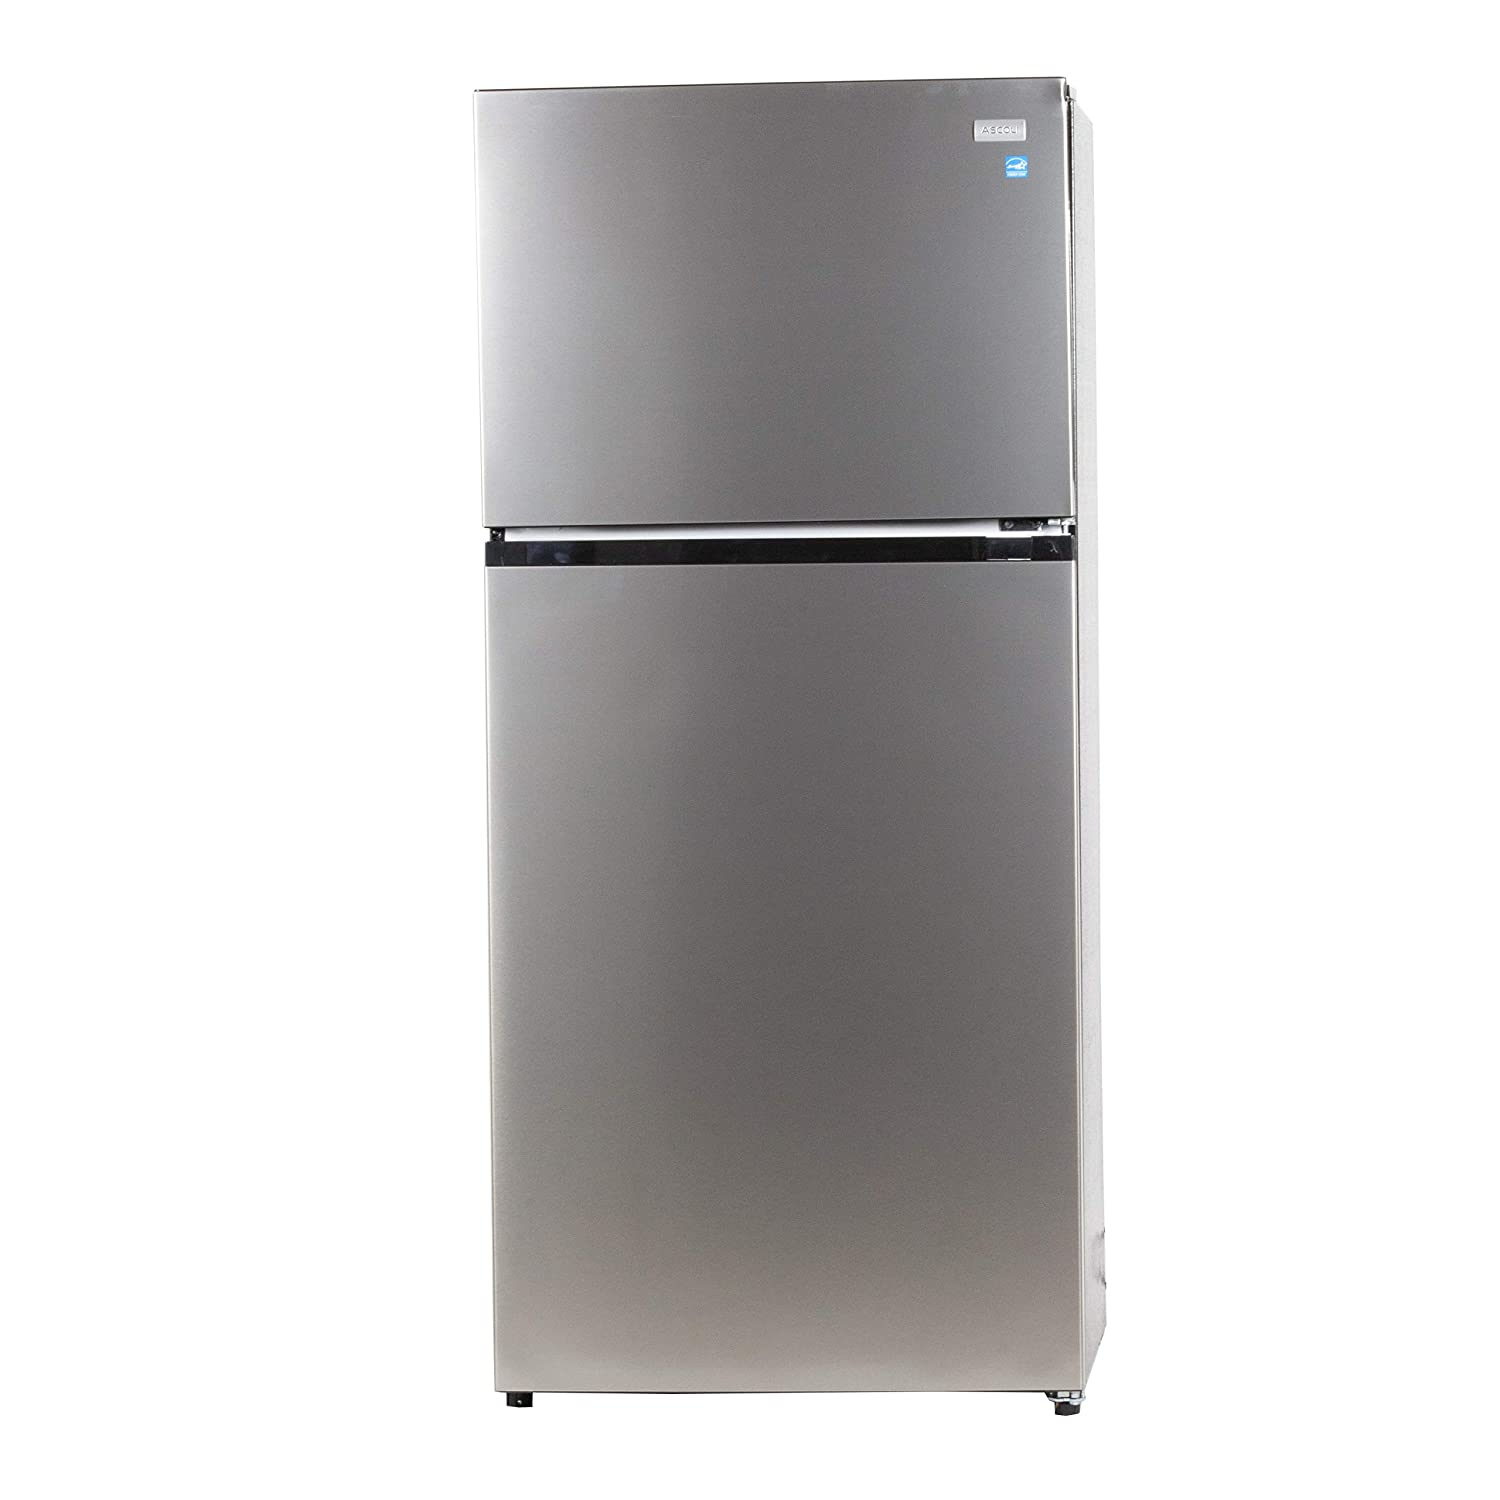 Equator-Ascoli 18 cu.ft. Top Freezer Apartment Refrigerator Stainless with additional Ice Maker kit